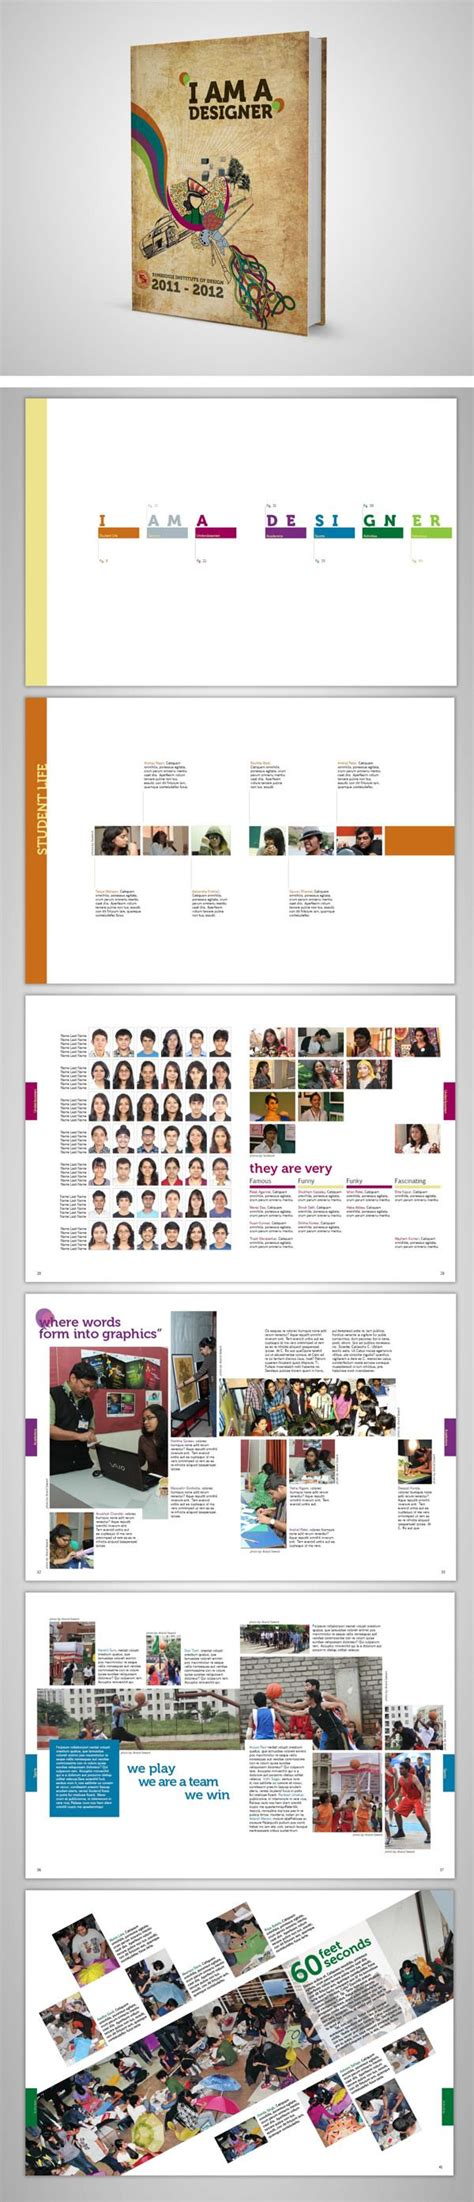 yearbook layout behance 328 best 8th grade yearbook class images on pinterest